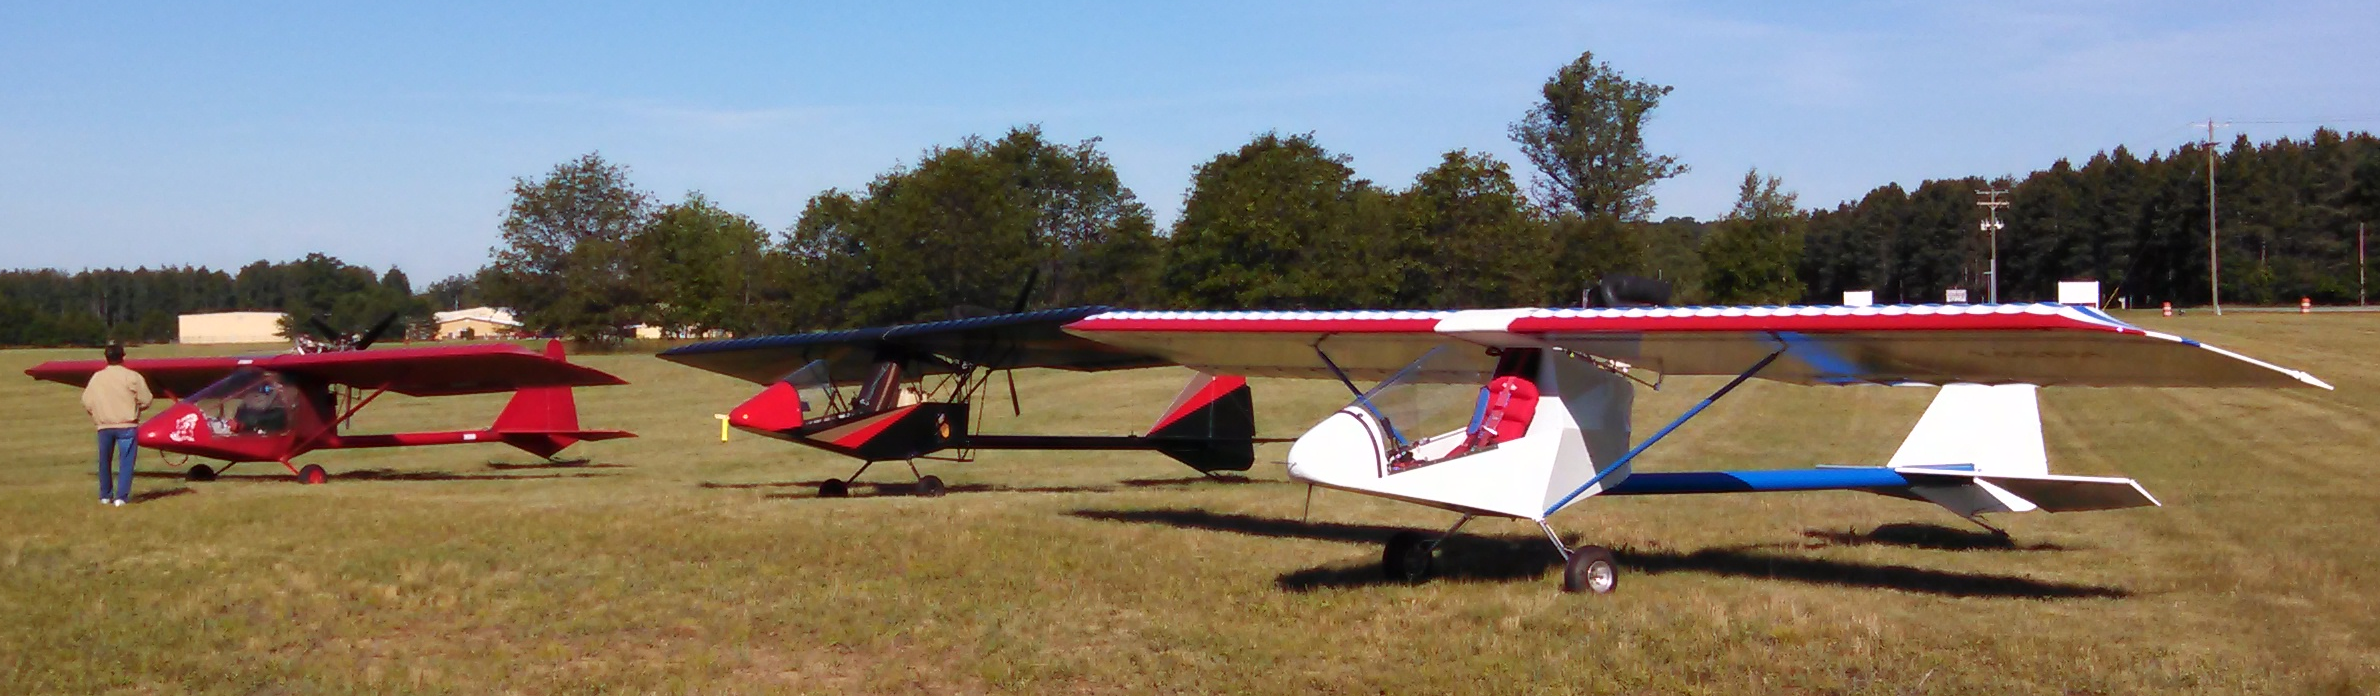 """""""Flying circles around the airport has never been my idea of fun, so when  considering what Ultralight to buy, the performance of the Kolb Firefly  stood out."""